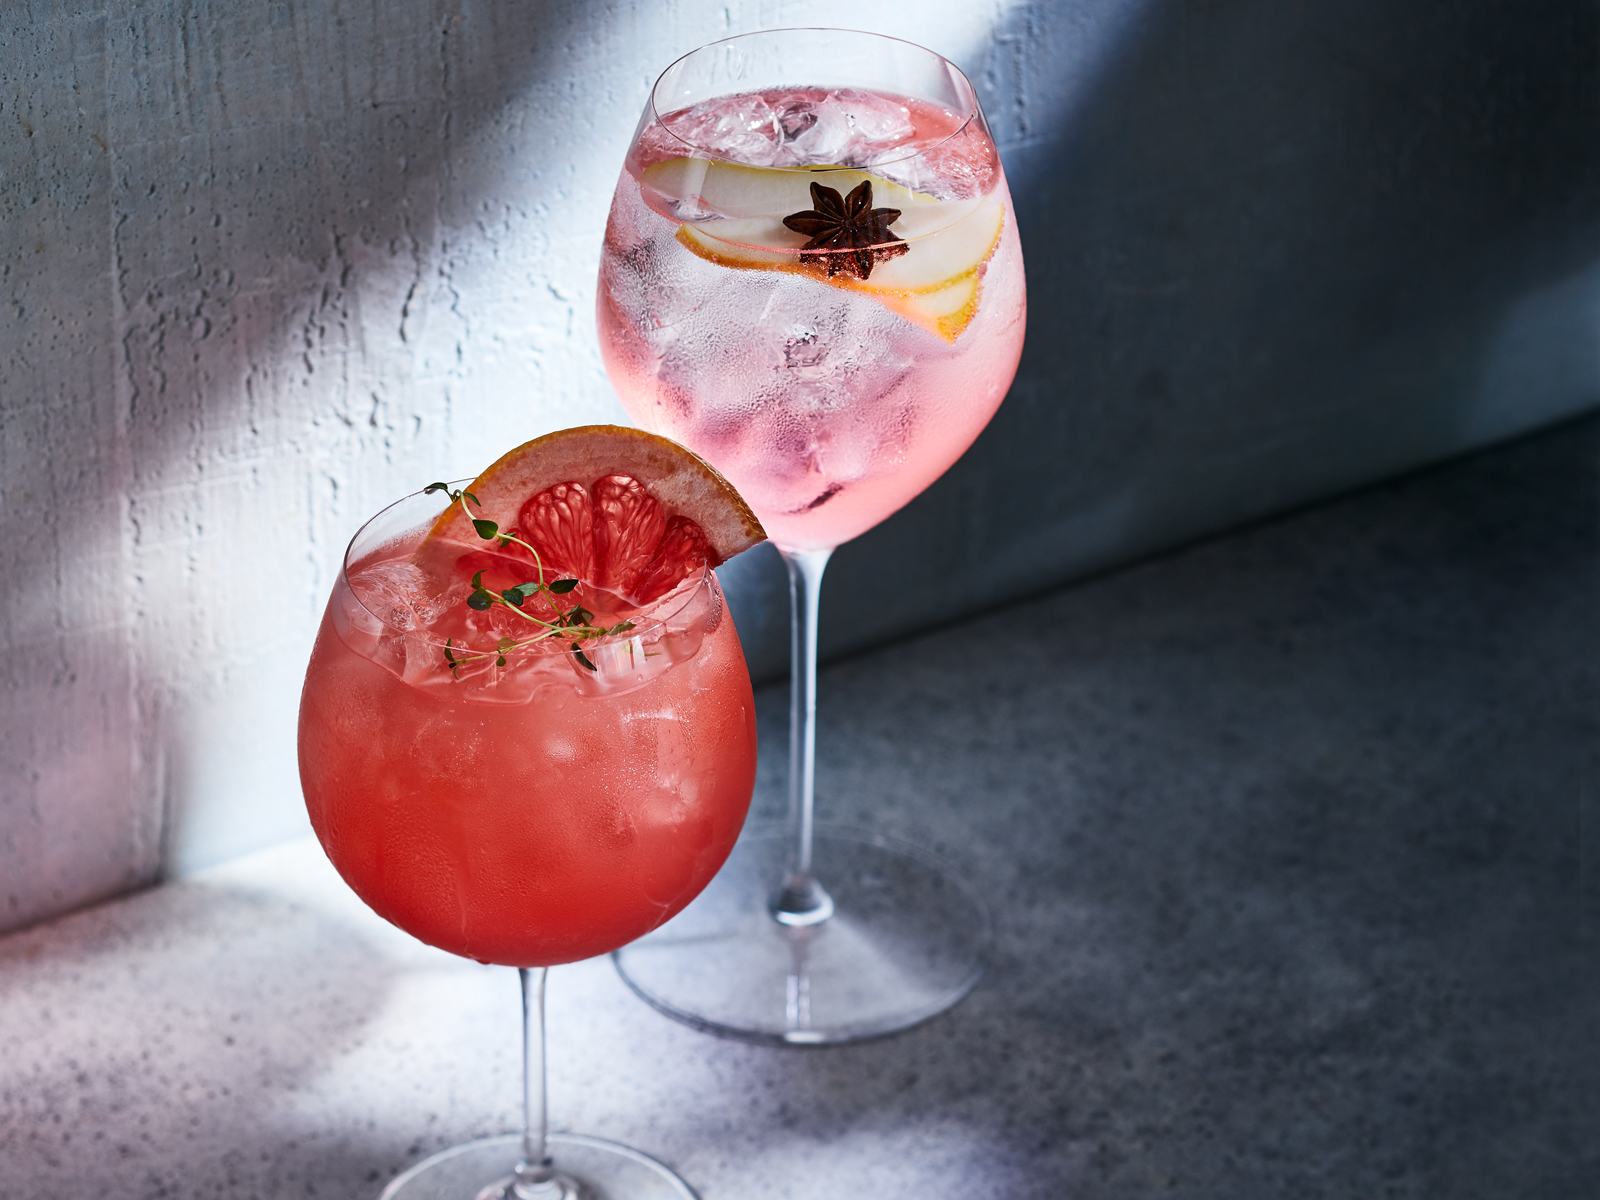 Spiced Pear Spritz and Ruby Red Spritz Recipe